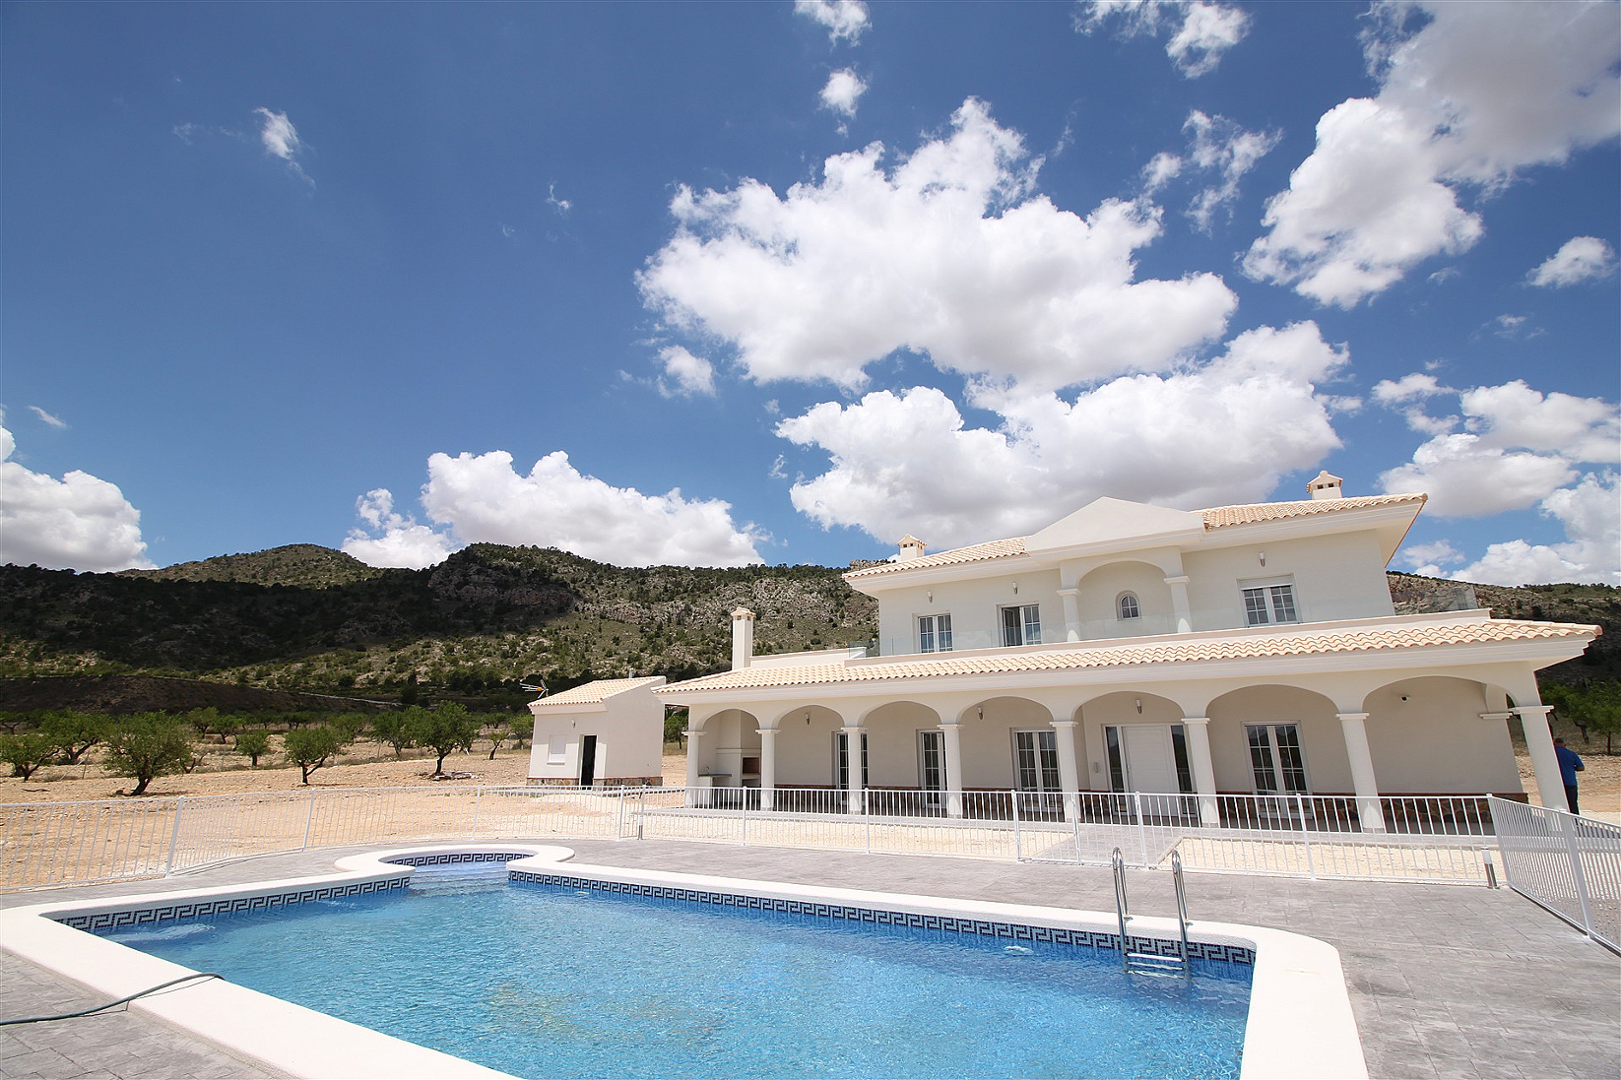 Luxury New Villa with Pool €298,995 inc. land, licences & legalities. ...